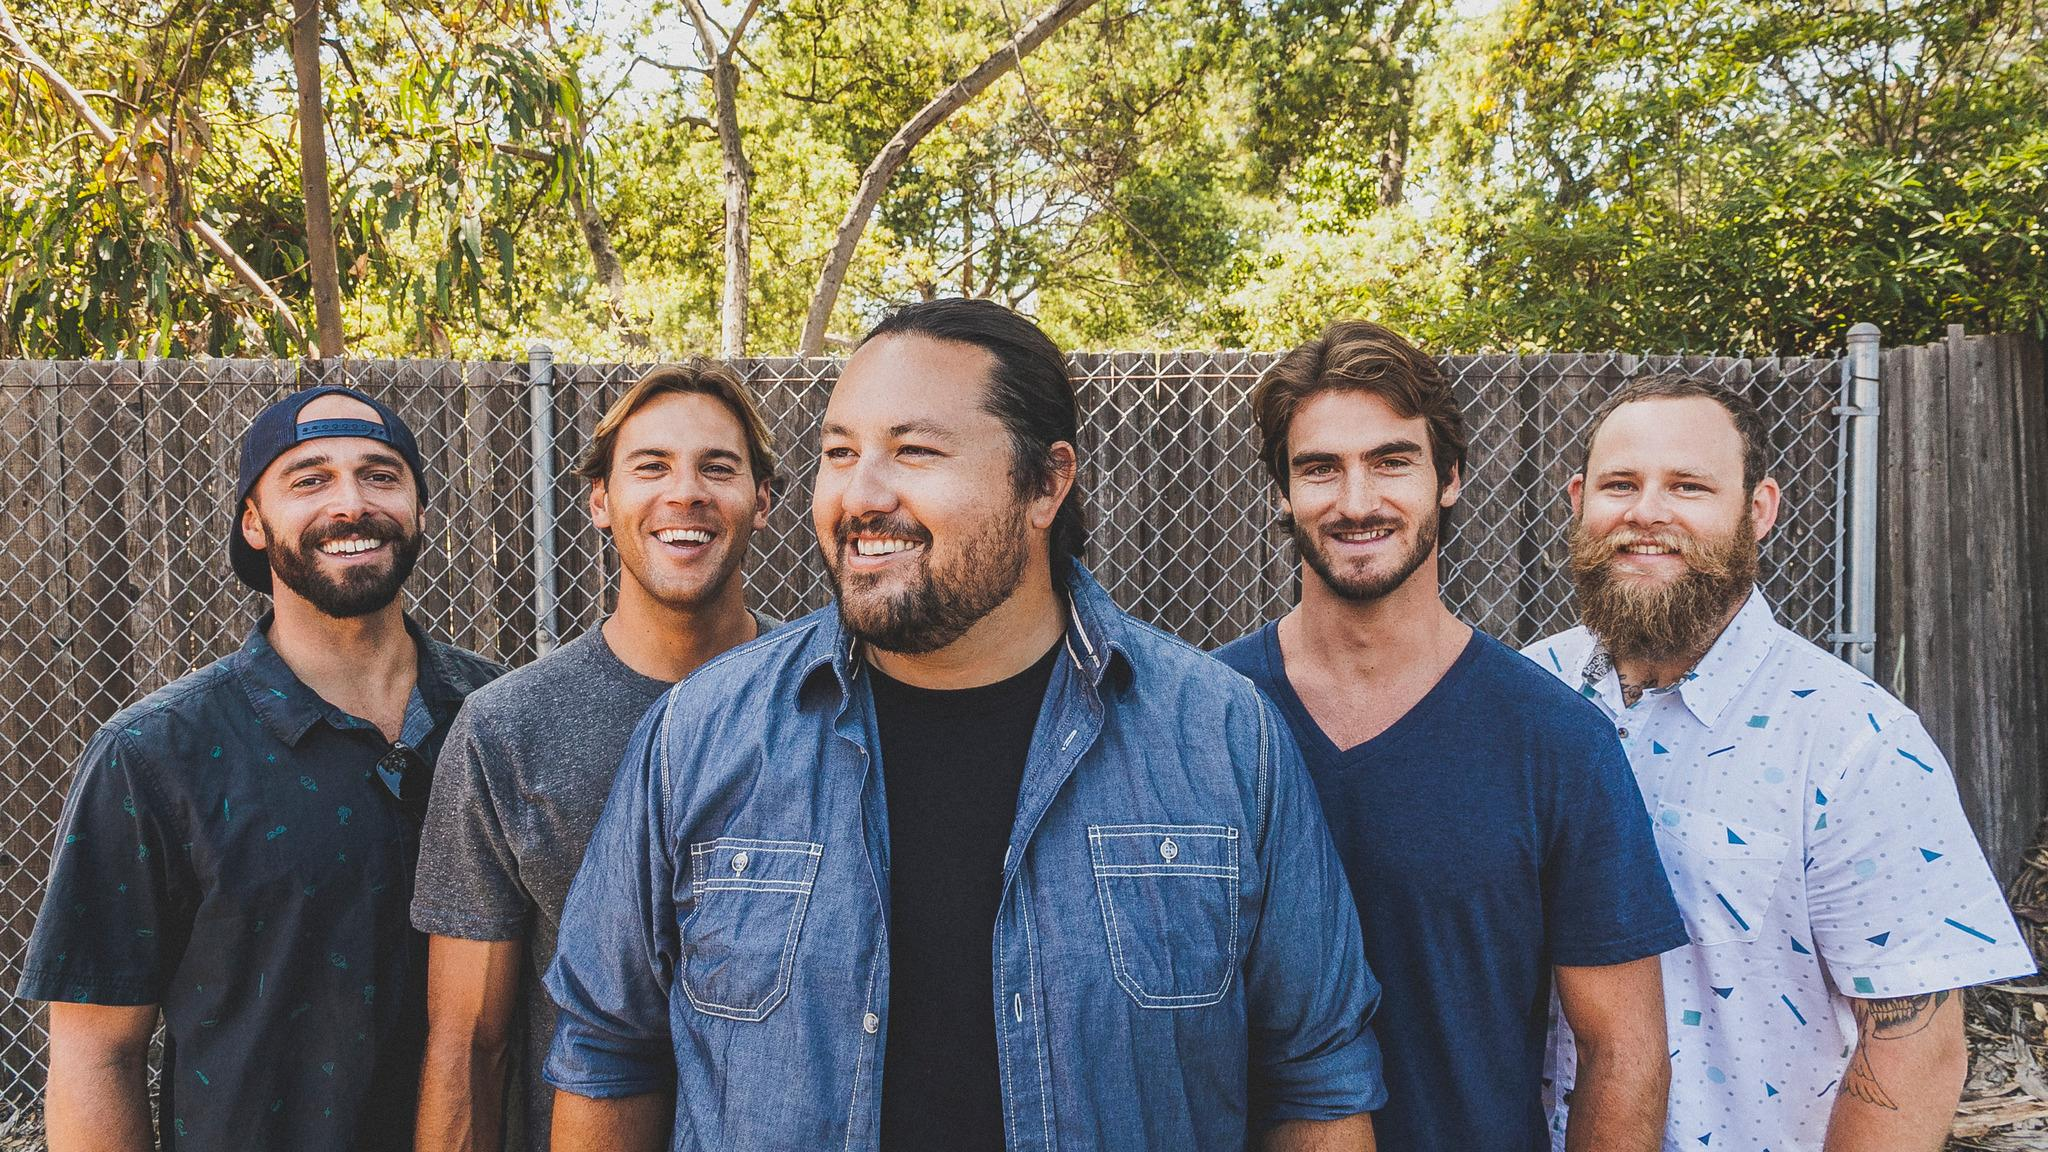 Iration - Meet & Greet Packages at Apogee Stadium